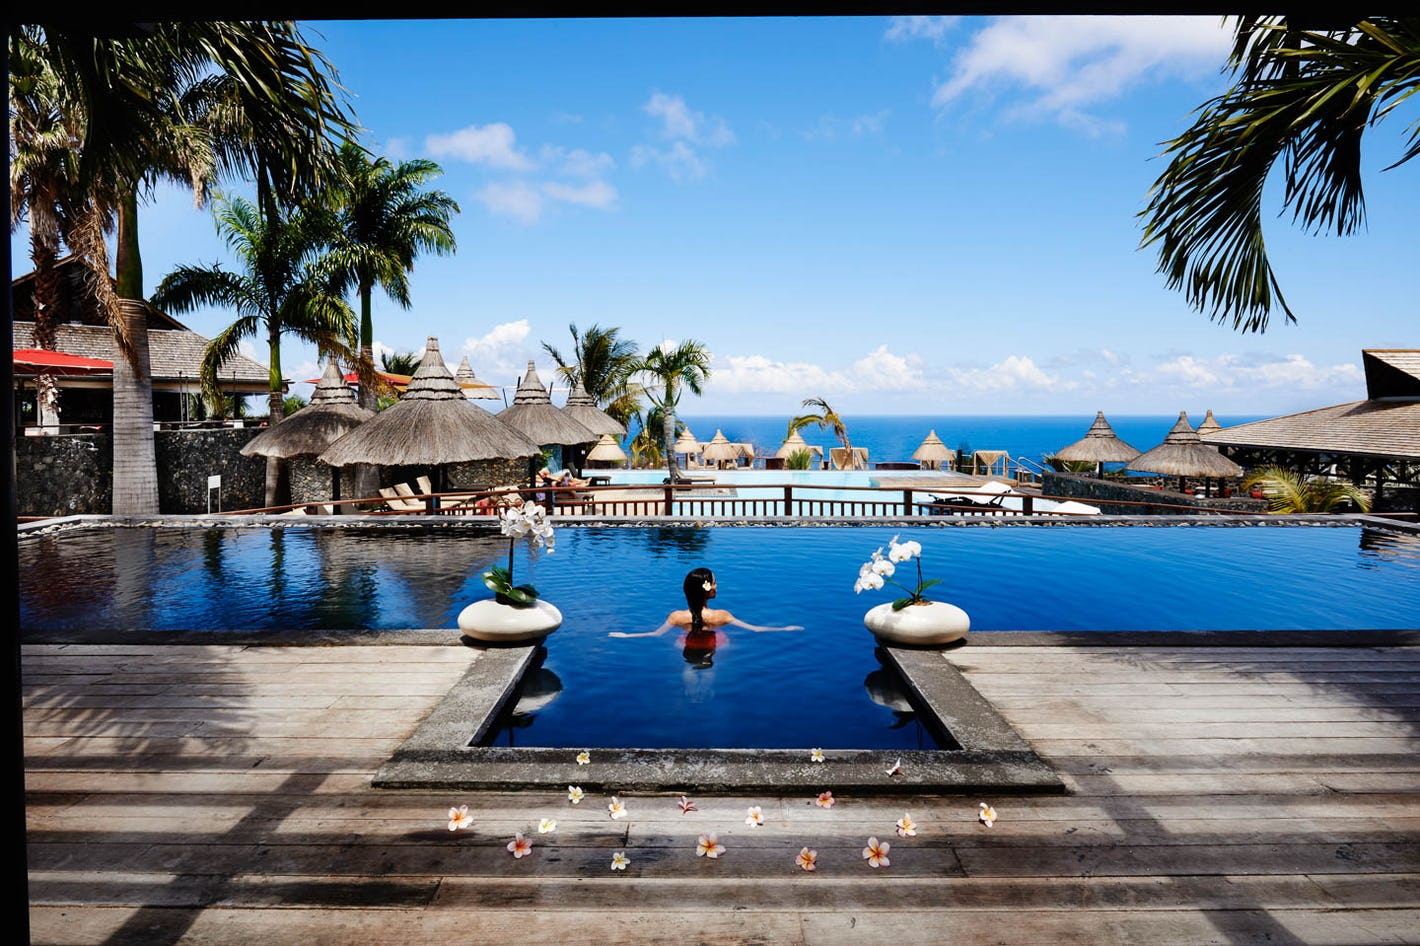 Enjoy The Chic Palm Hotel Spa And Soak Up Panoramic Views Of Ocean